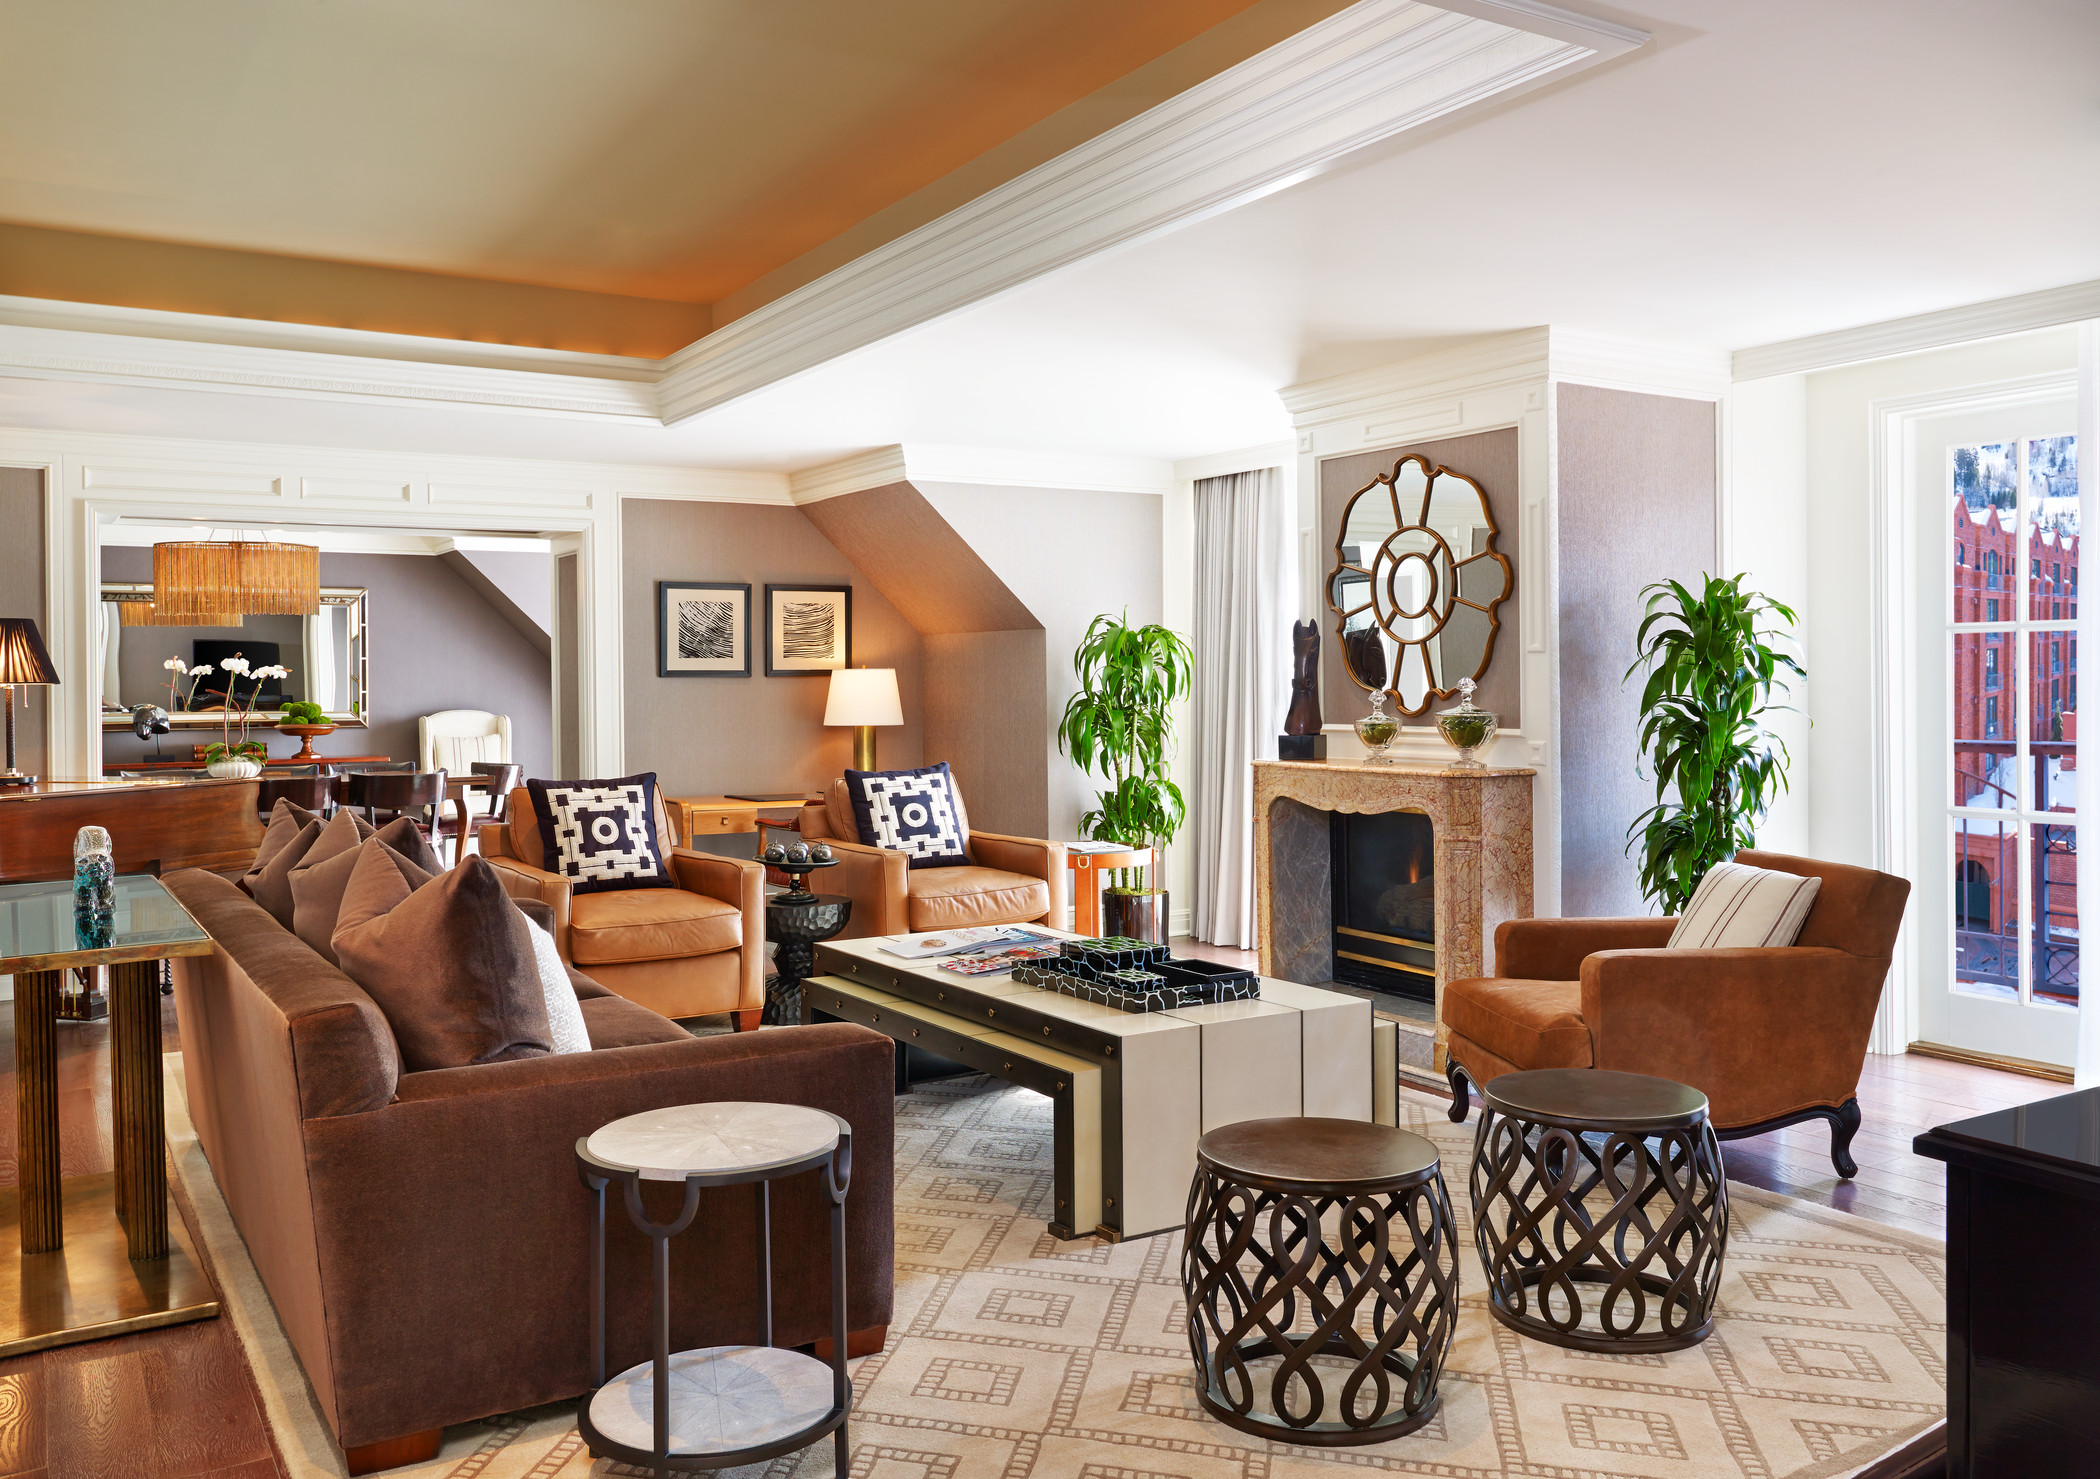 For a decidedly baller experience, get thee to the St. Regis.